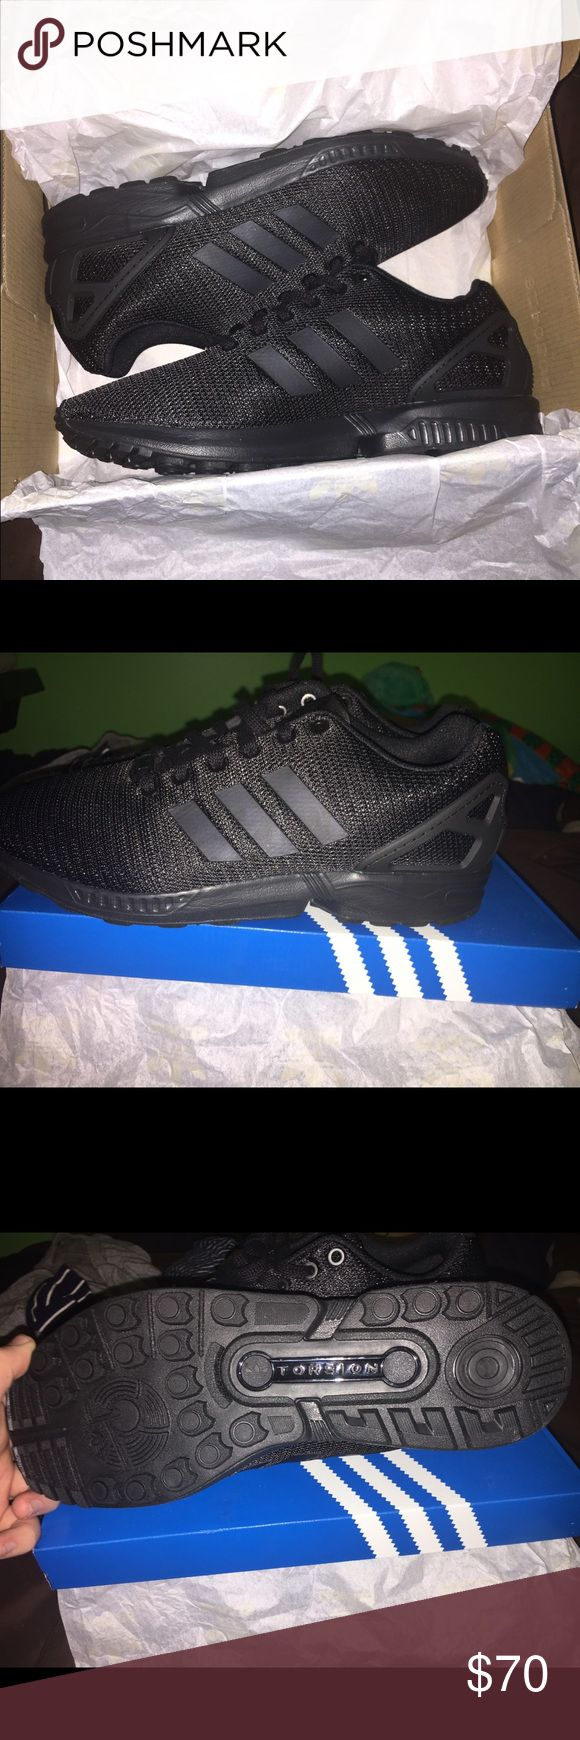 Adidas ZX Flux brand new adidas flux zx, Adidas Shoes Sneakers